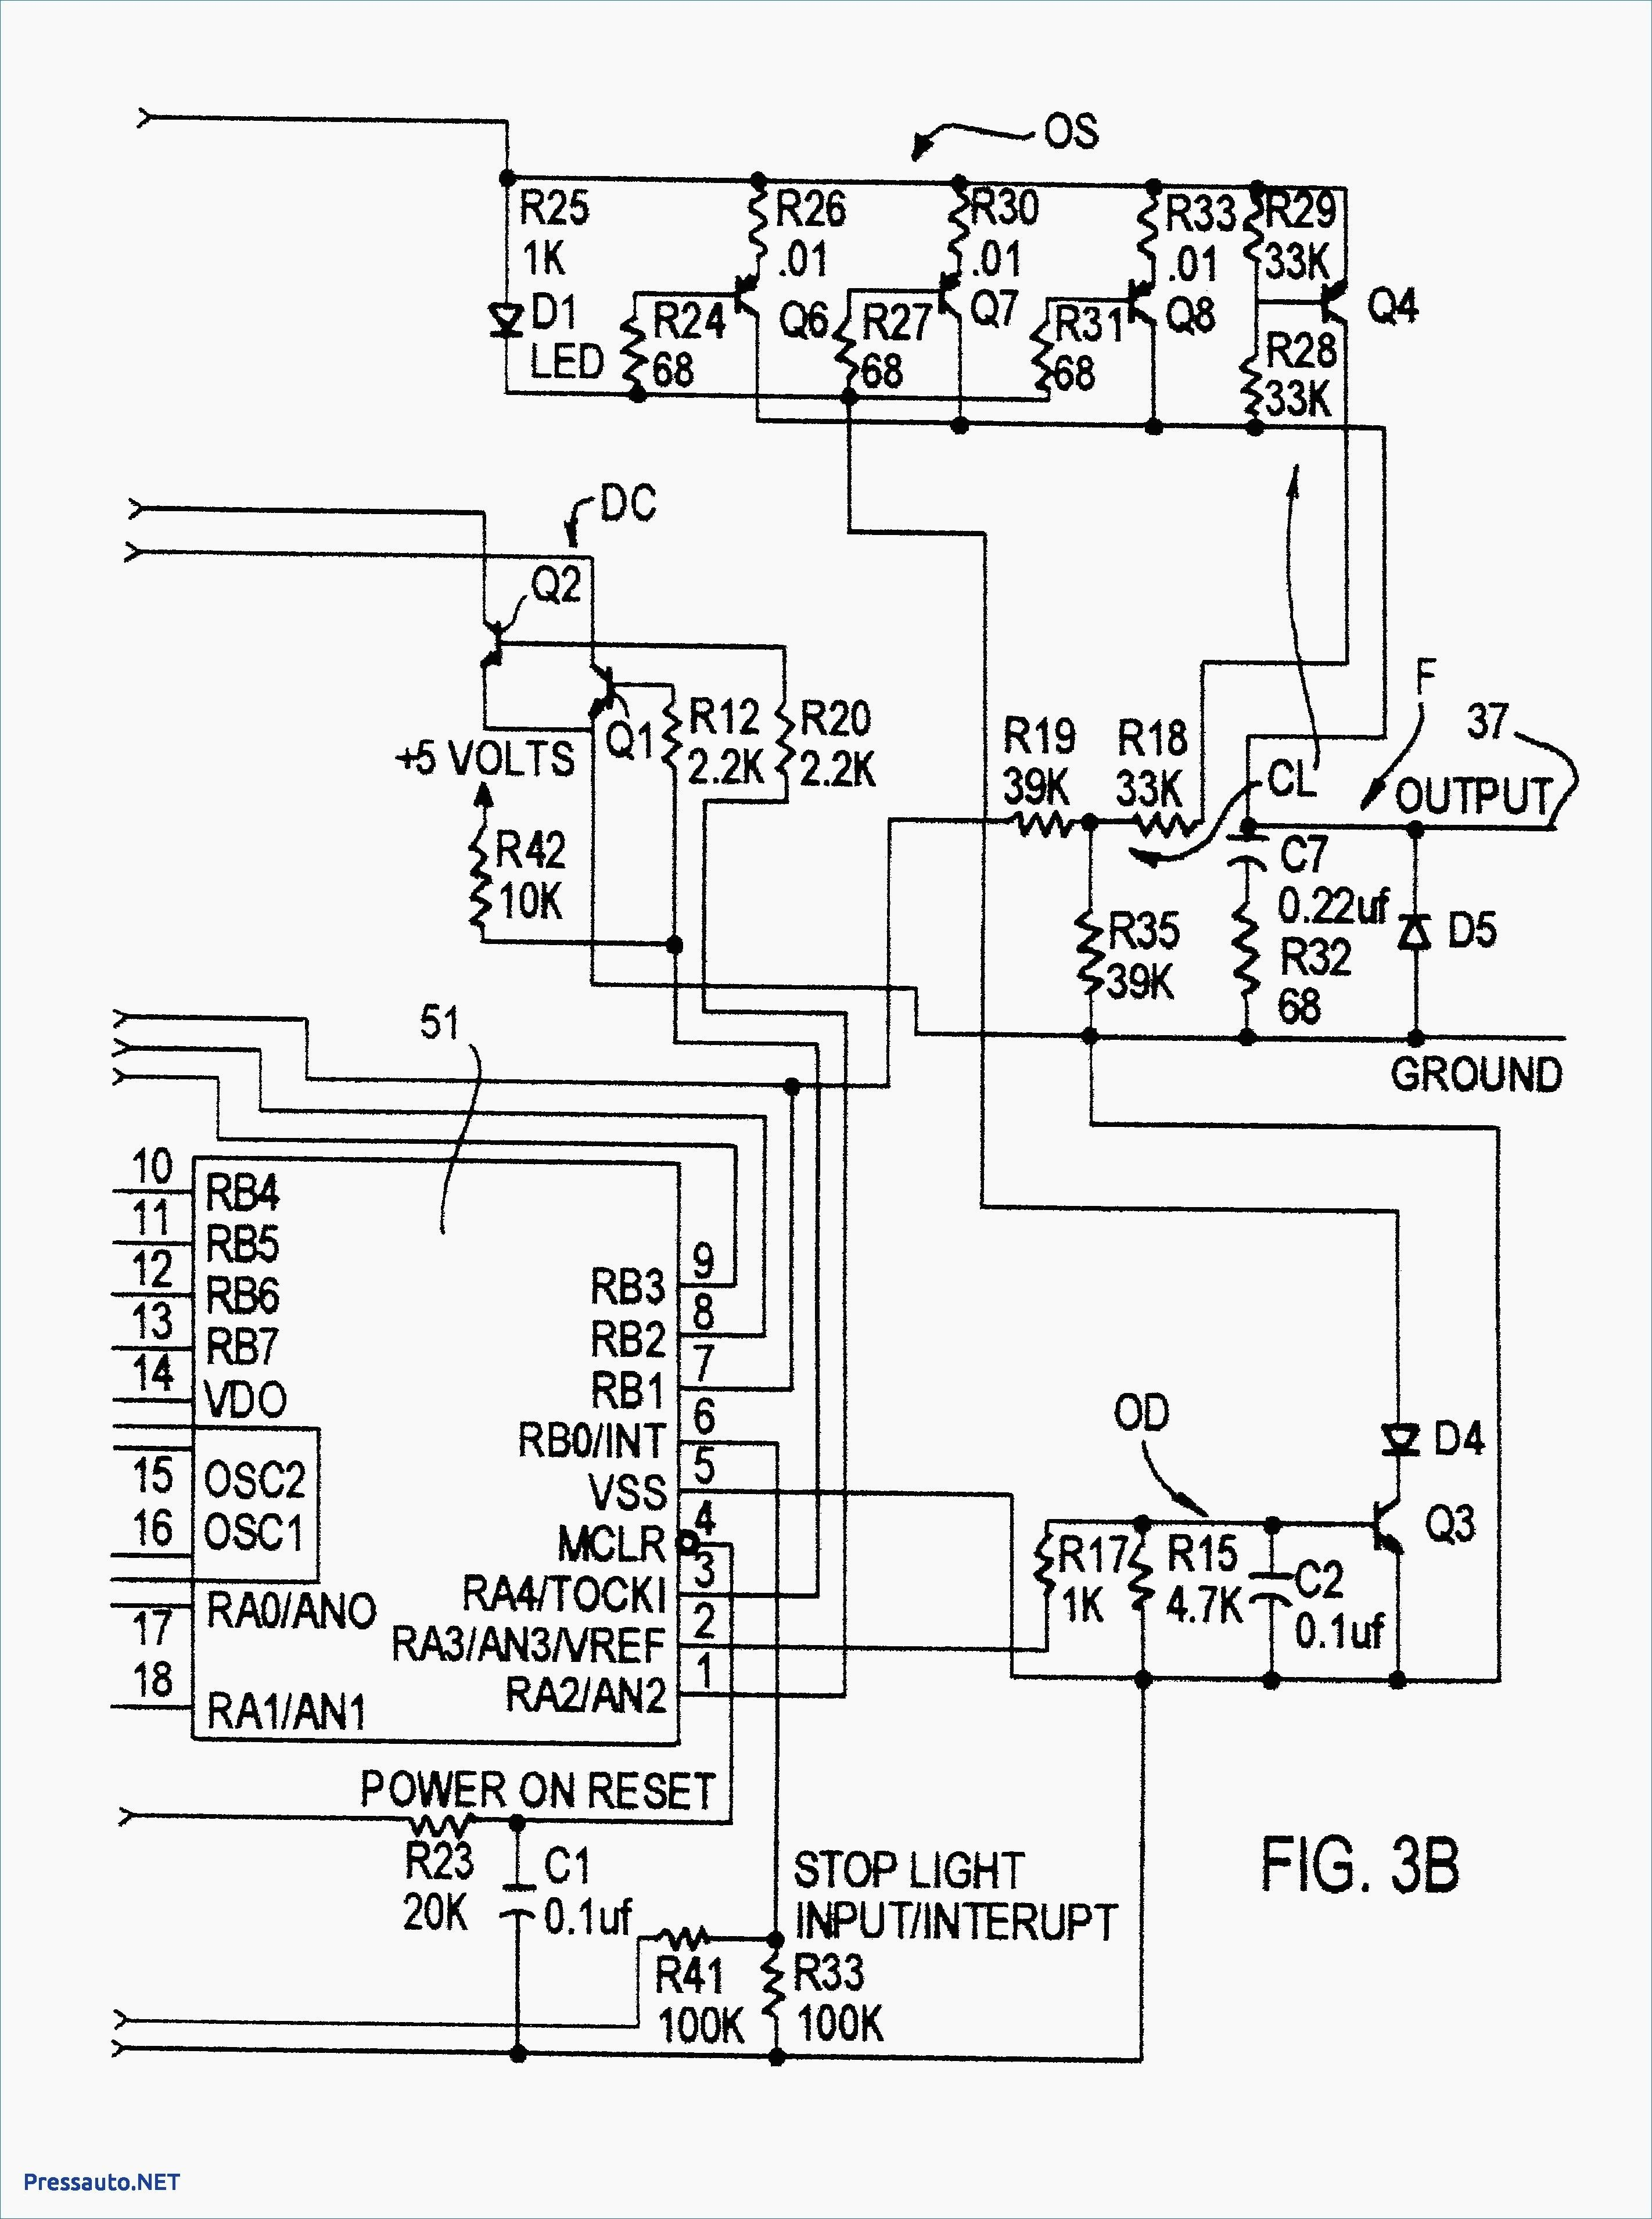 Wfco Wiring Diagram In